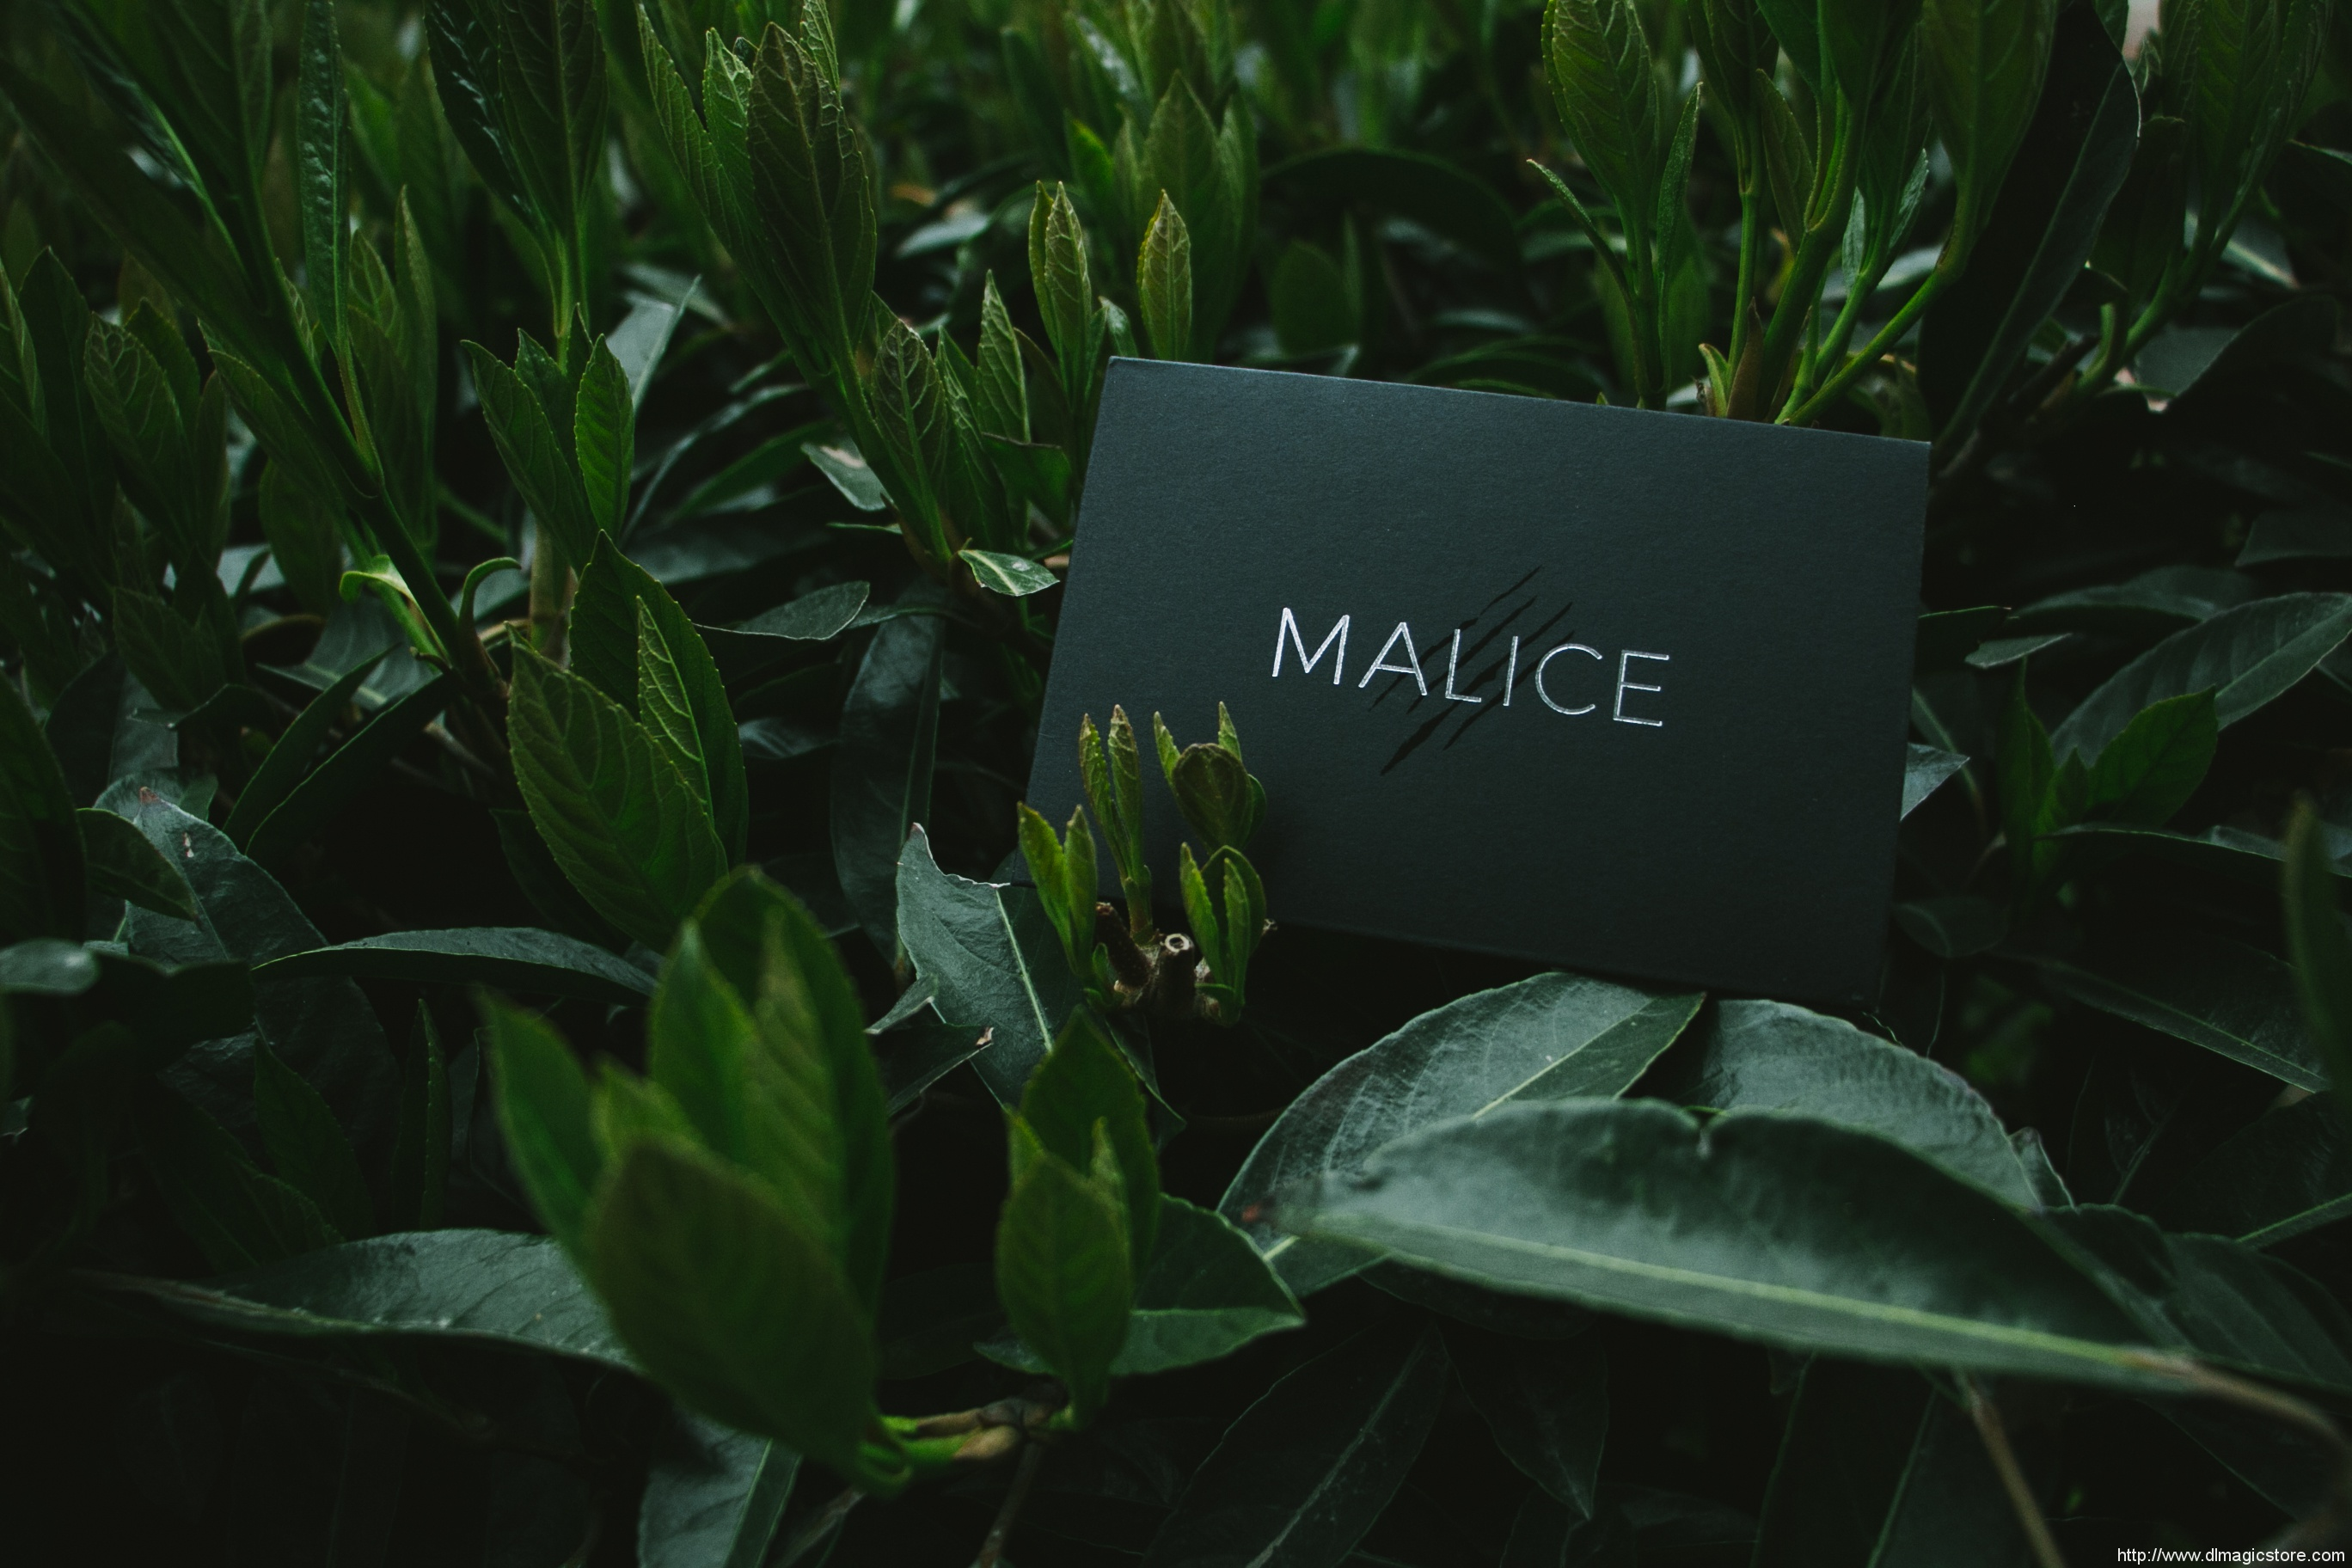 Malice by Eric Jones and Lost Art Magic